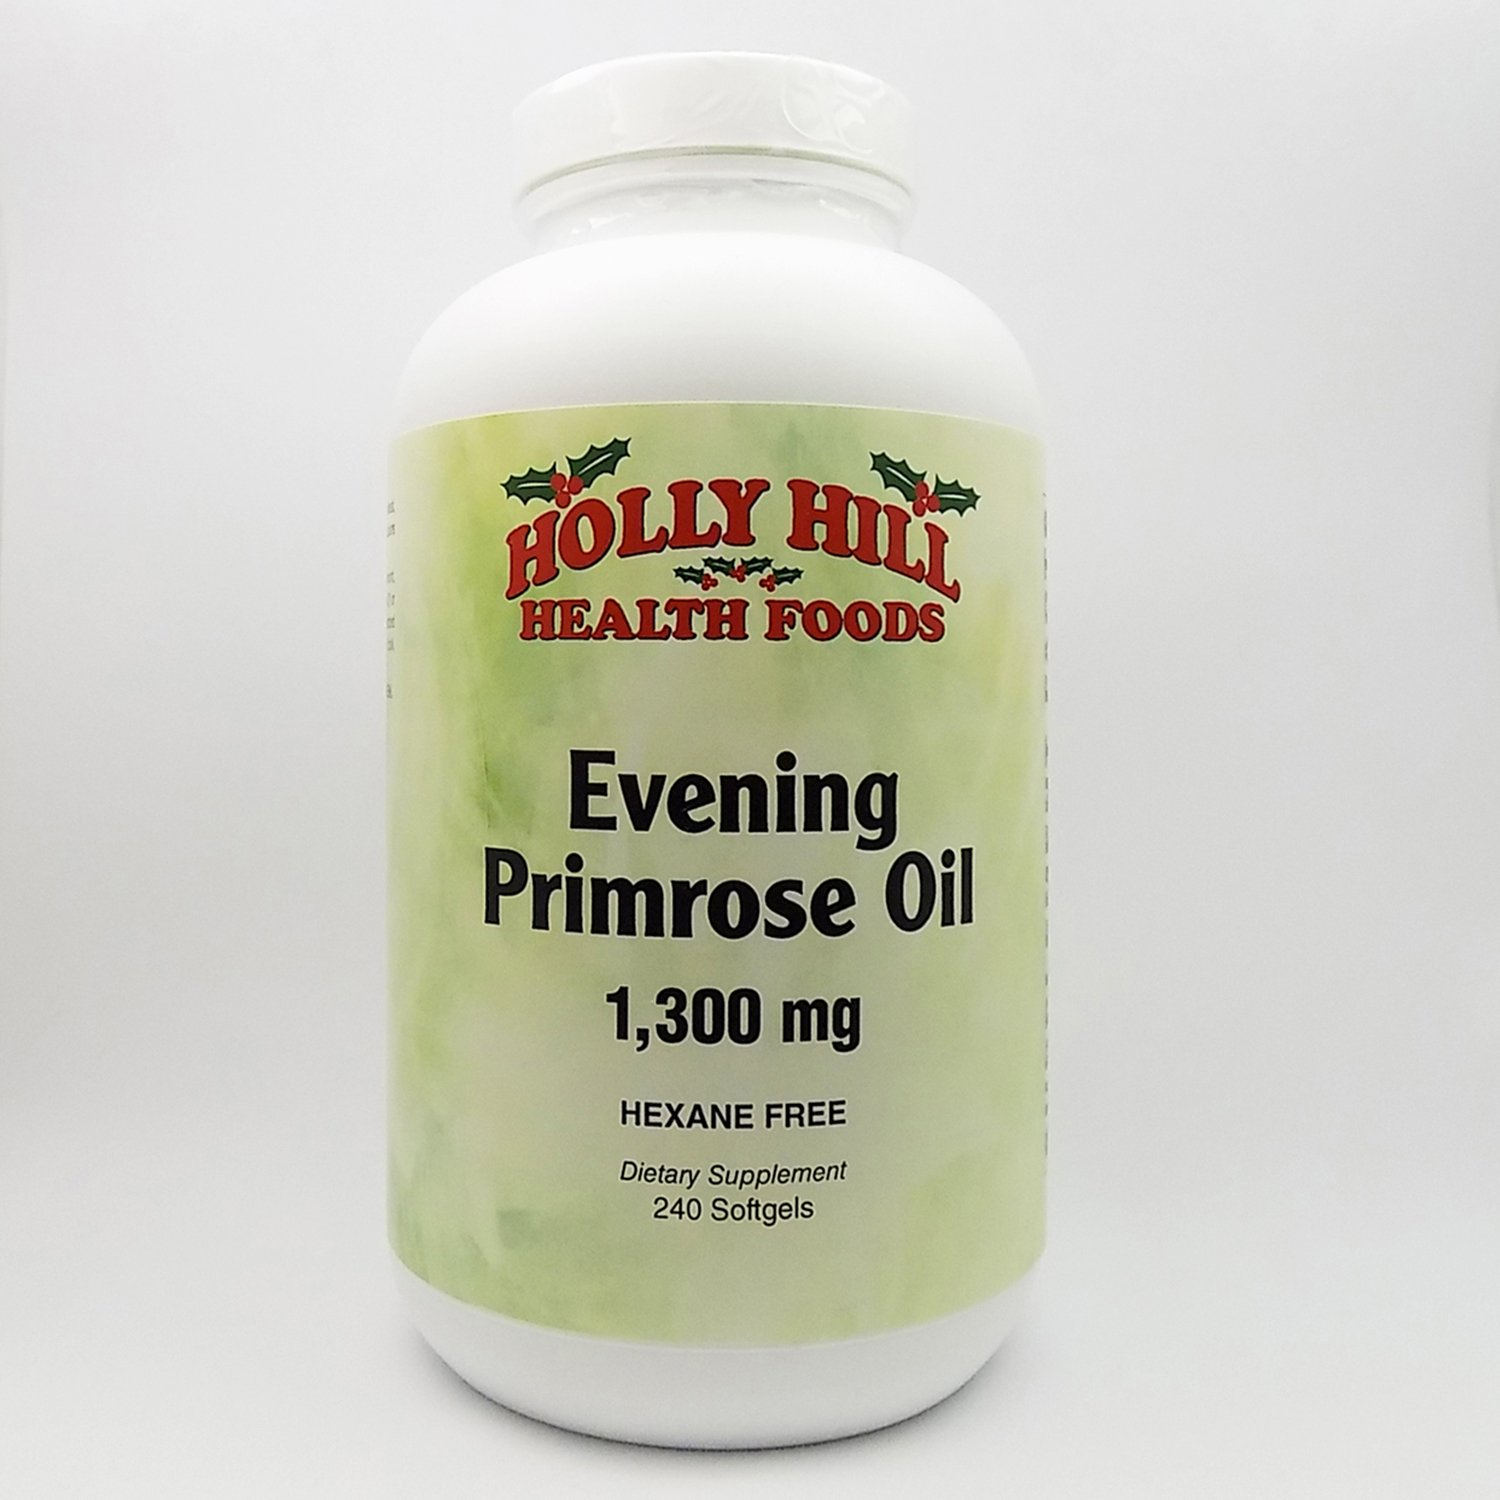 Holly Hill Health Foods, Evening Primrose Oil 1300 MG, Hexane Free, 240 Softgels